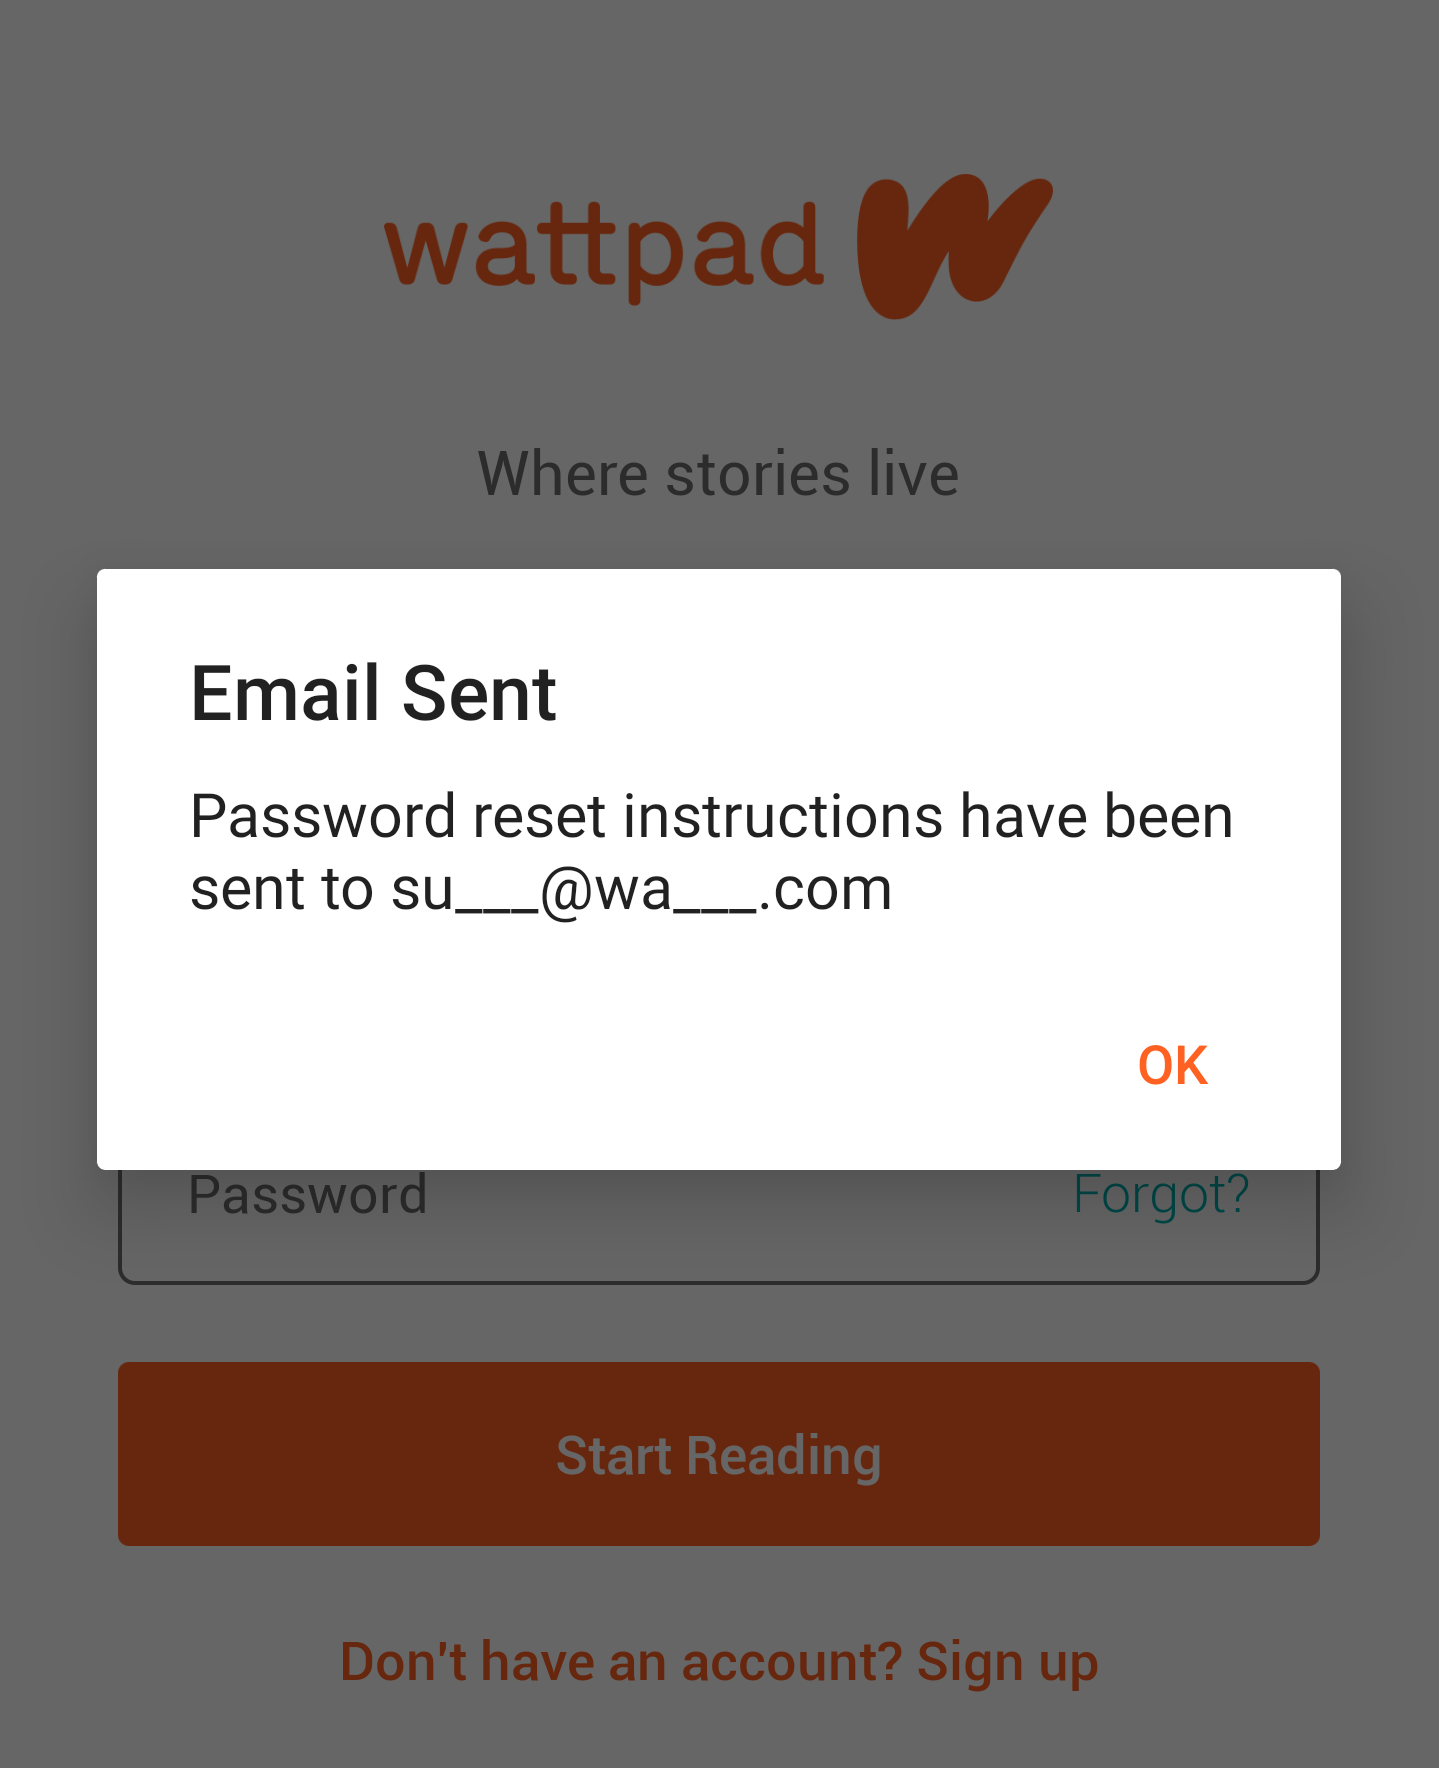 An image of the email sent pop-up. Its header reads 'Email Sent', followed by 'Password reset instructions have been sent to su___@wa___.com. The partial email address with underscores displays to protect users' privacy from having their full emails known.